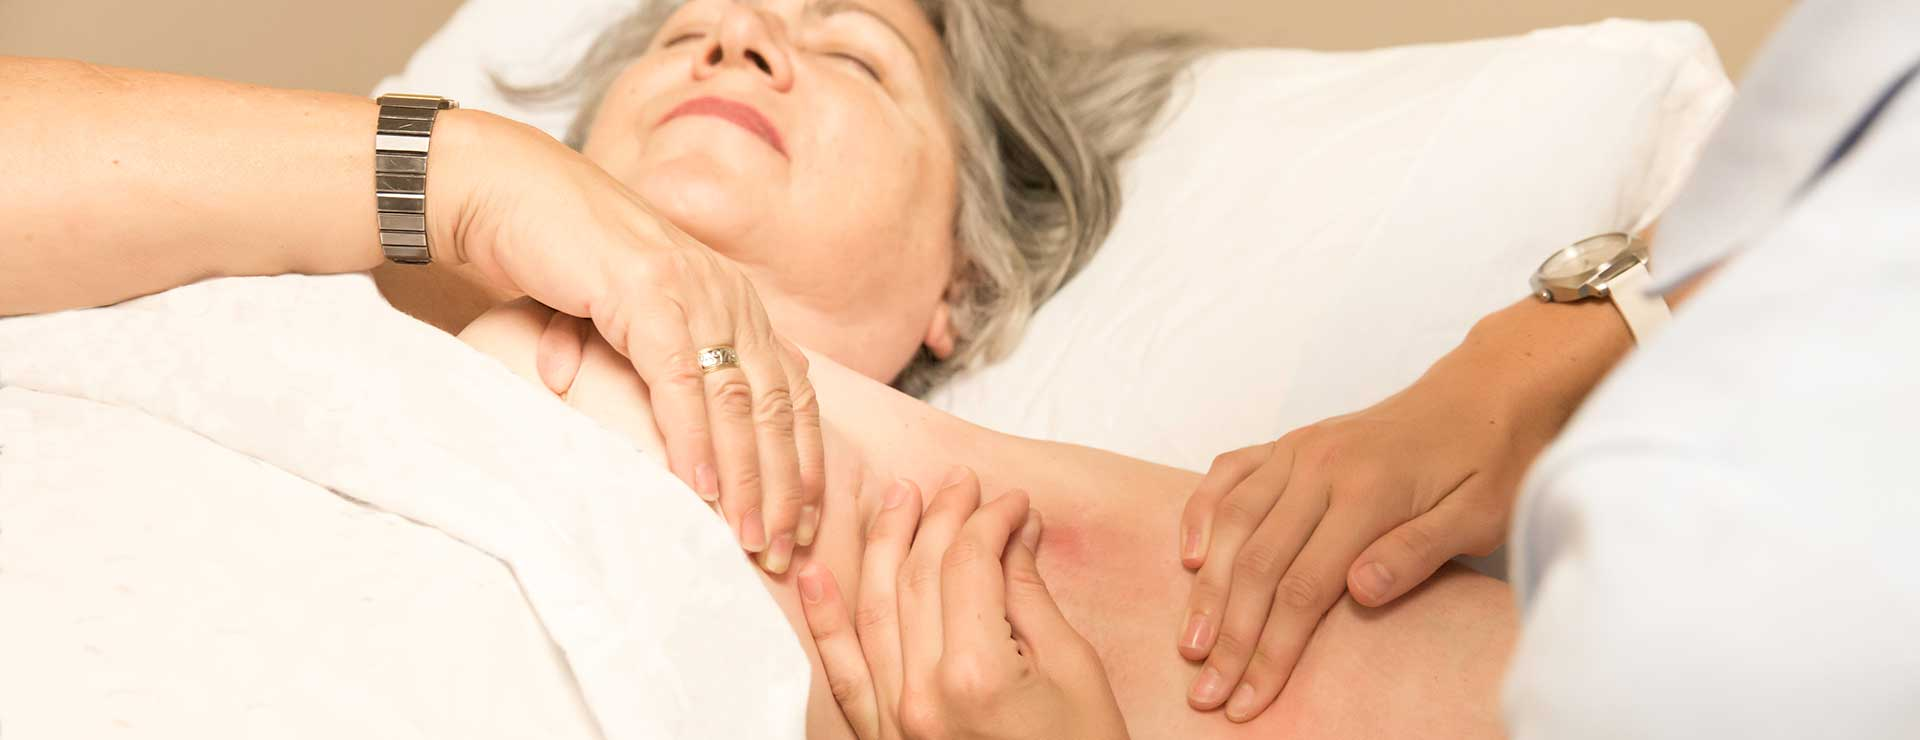 Lymphedema: What Are Your Surgical Options?